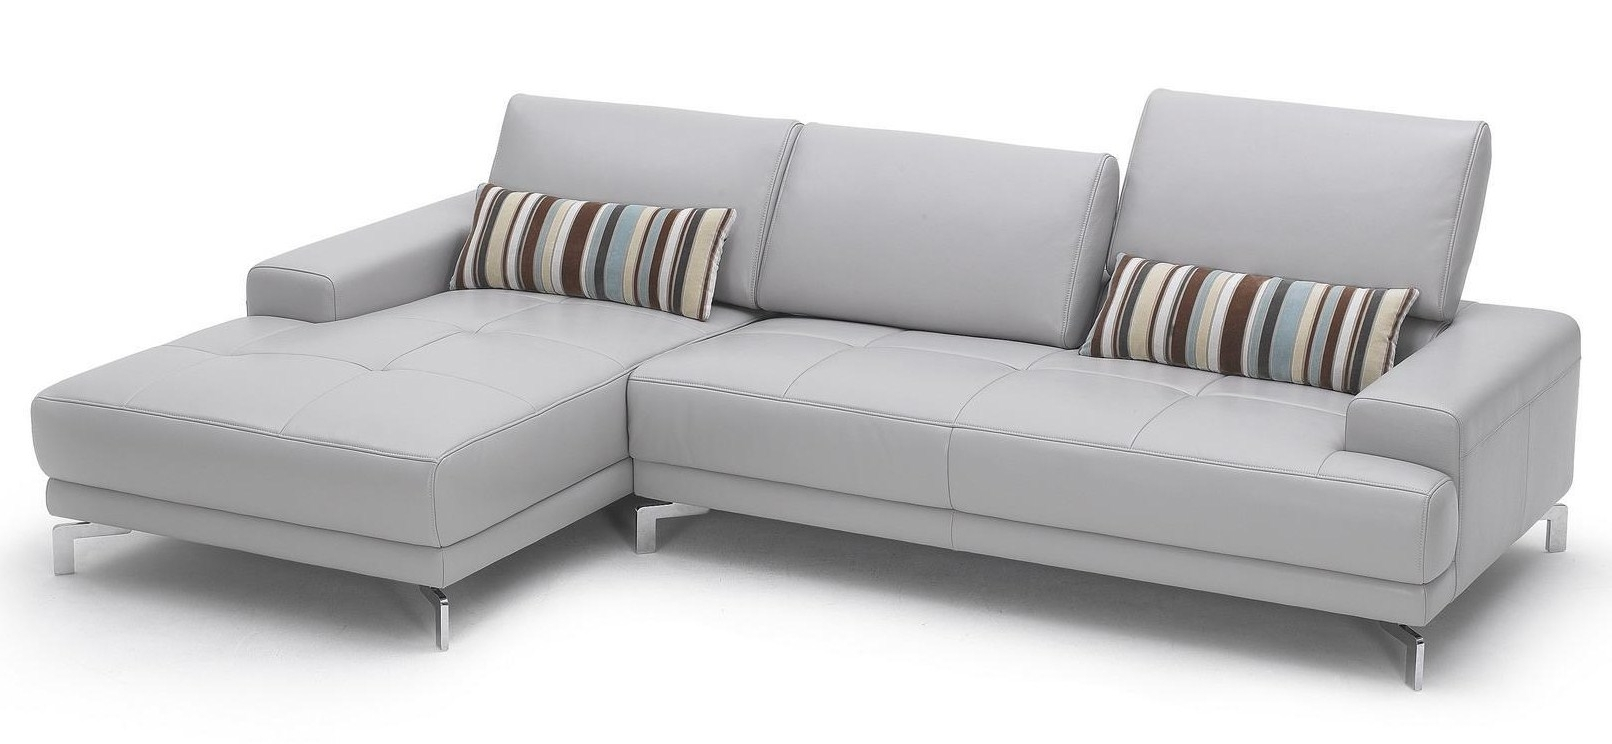 Most Up To Date White Modern Sofas With Sofas Modern And Modern Sofa White New York (View 6 of 20)